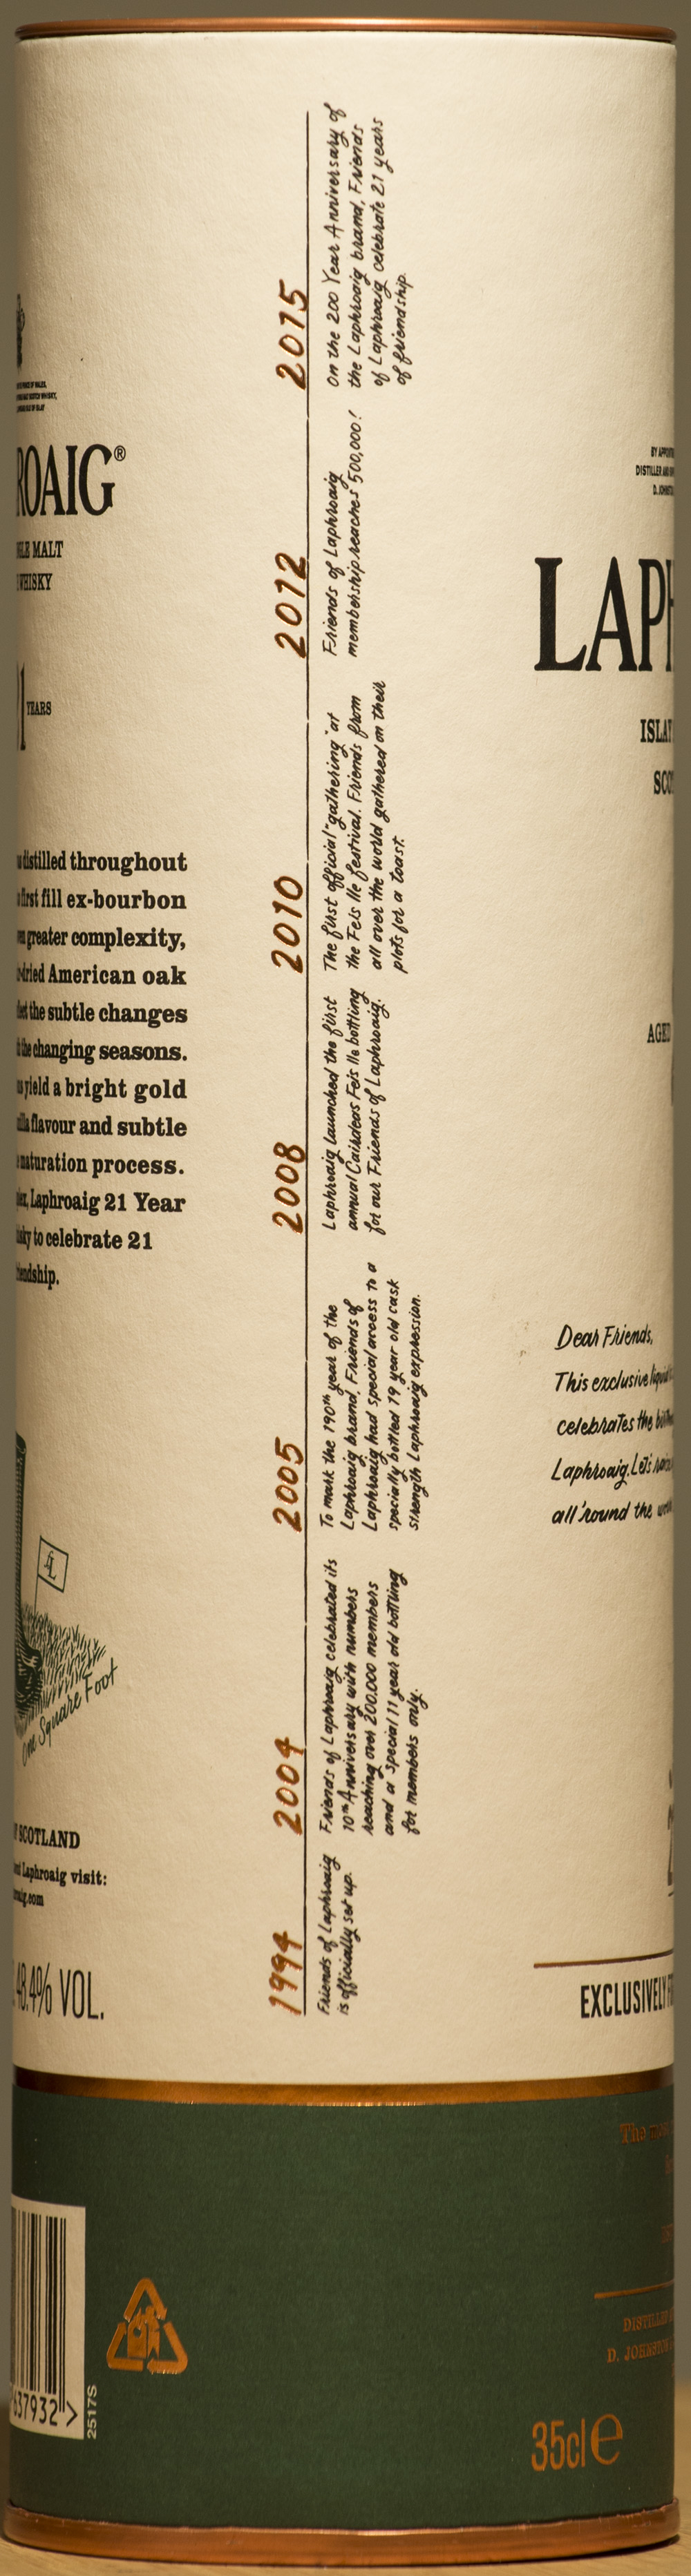 Billede: DSC_9118 - Laphroaig 21 års - FOL exclusive - tube side.jpg